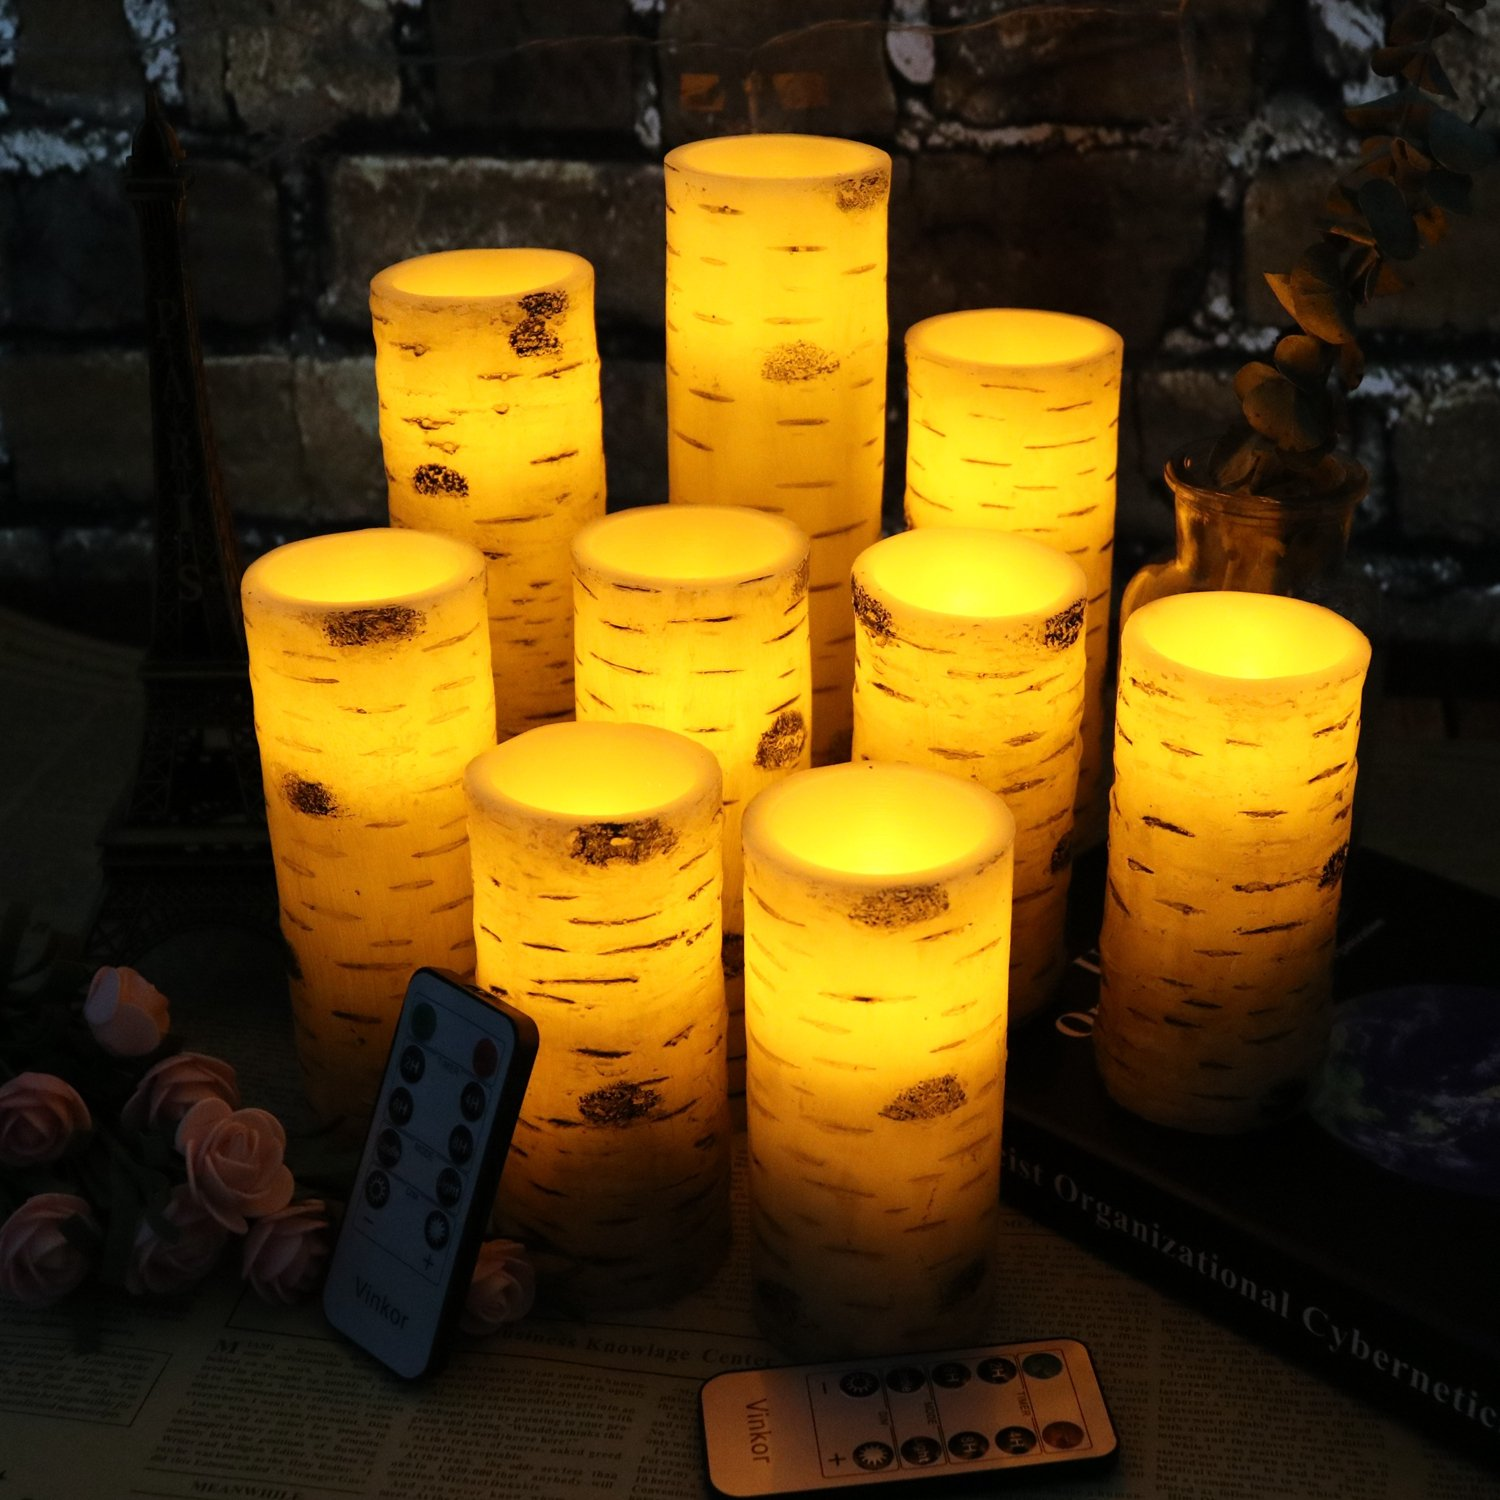 Vinkor Flameless Candles Battery Operated Candles Birch Bark Effect 4'' 5'' 6'' 7'' 8'' 9'' Set of 9 Real Wax Pillar LED Candles with 10-Key Remote Control 2/4/6/8 Hours Timer